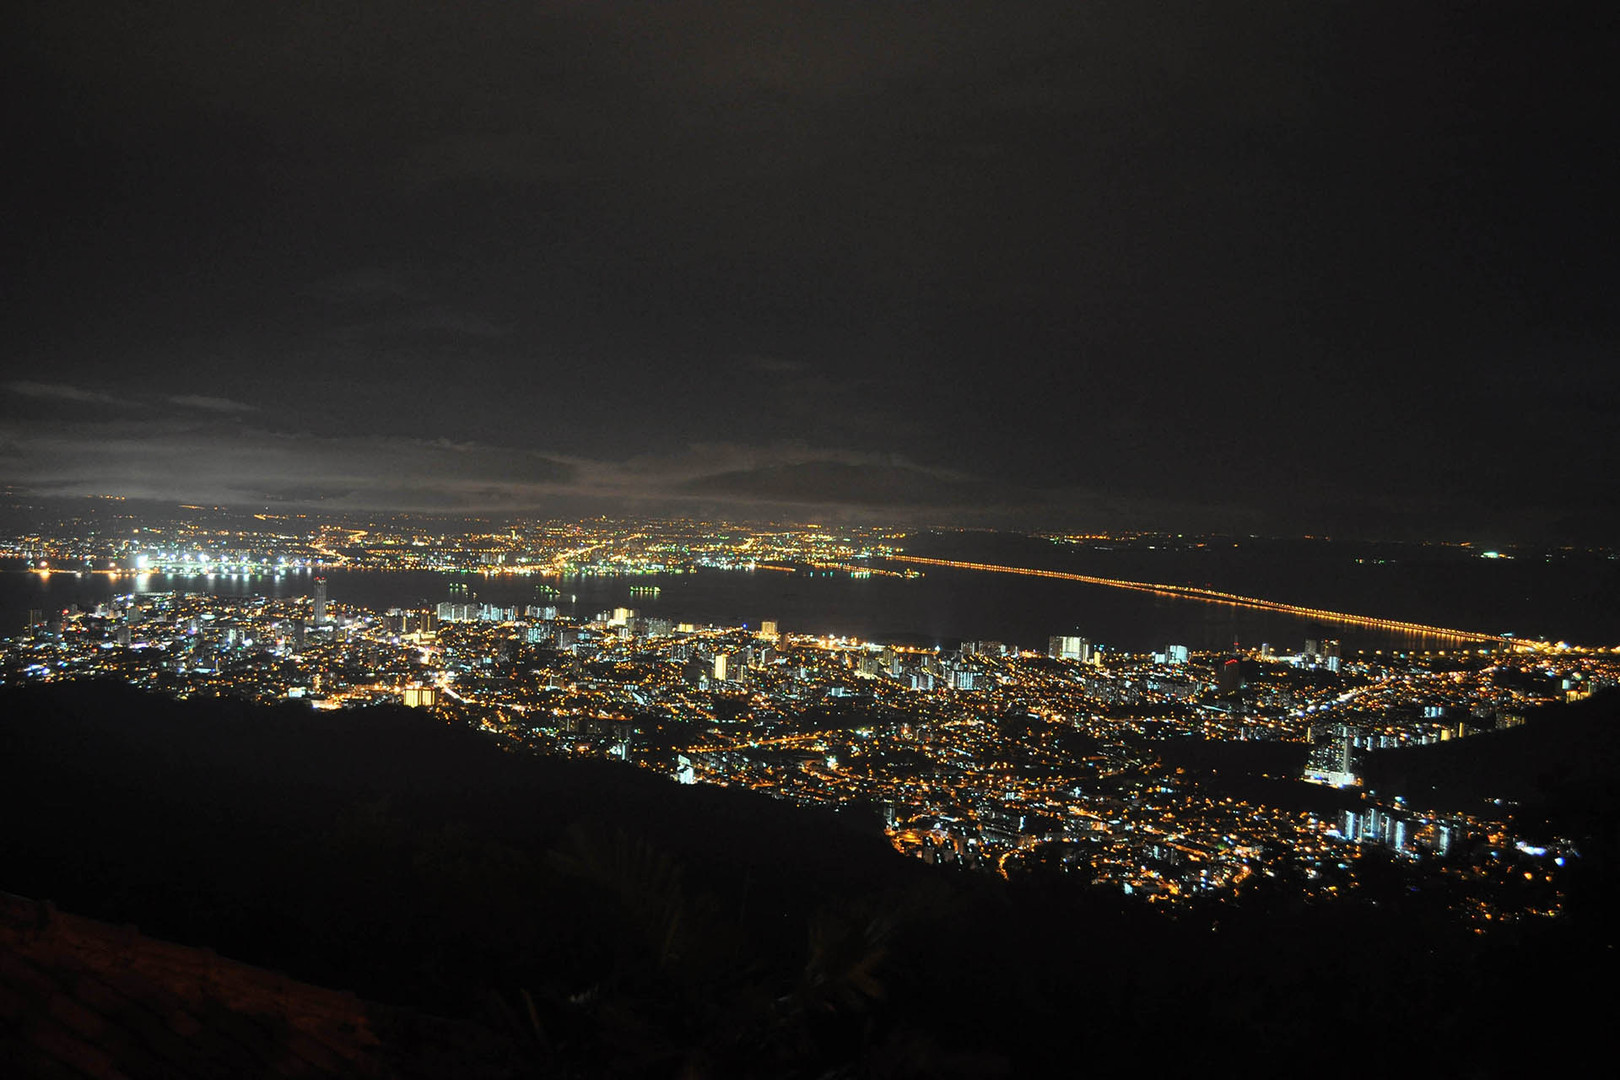 Night View of George Town